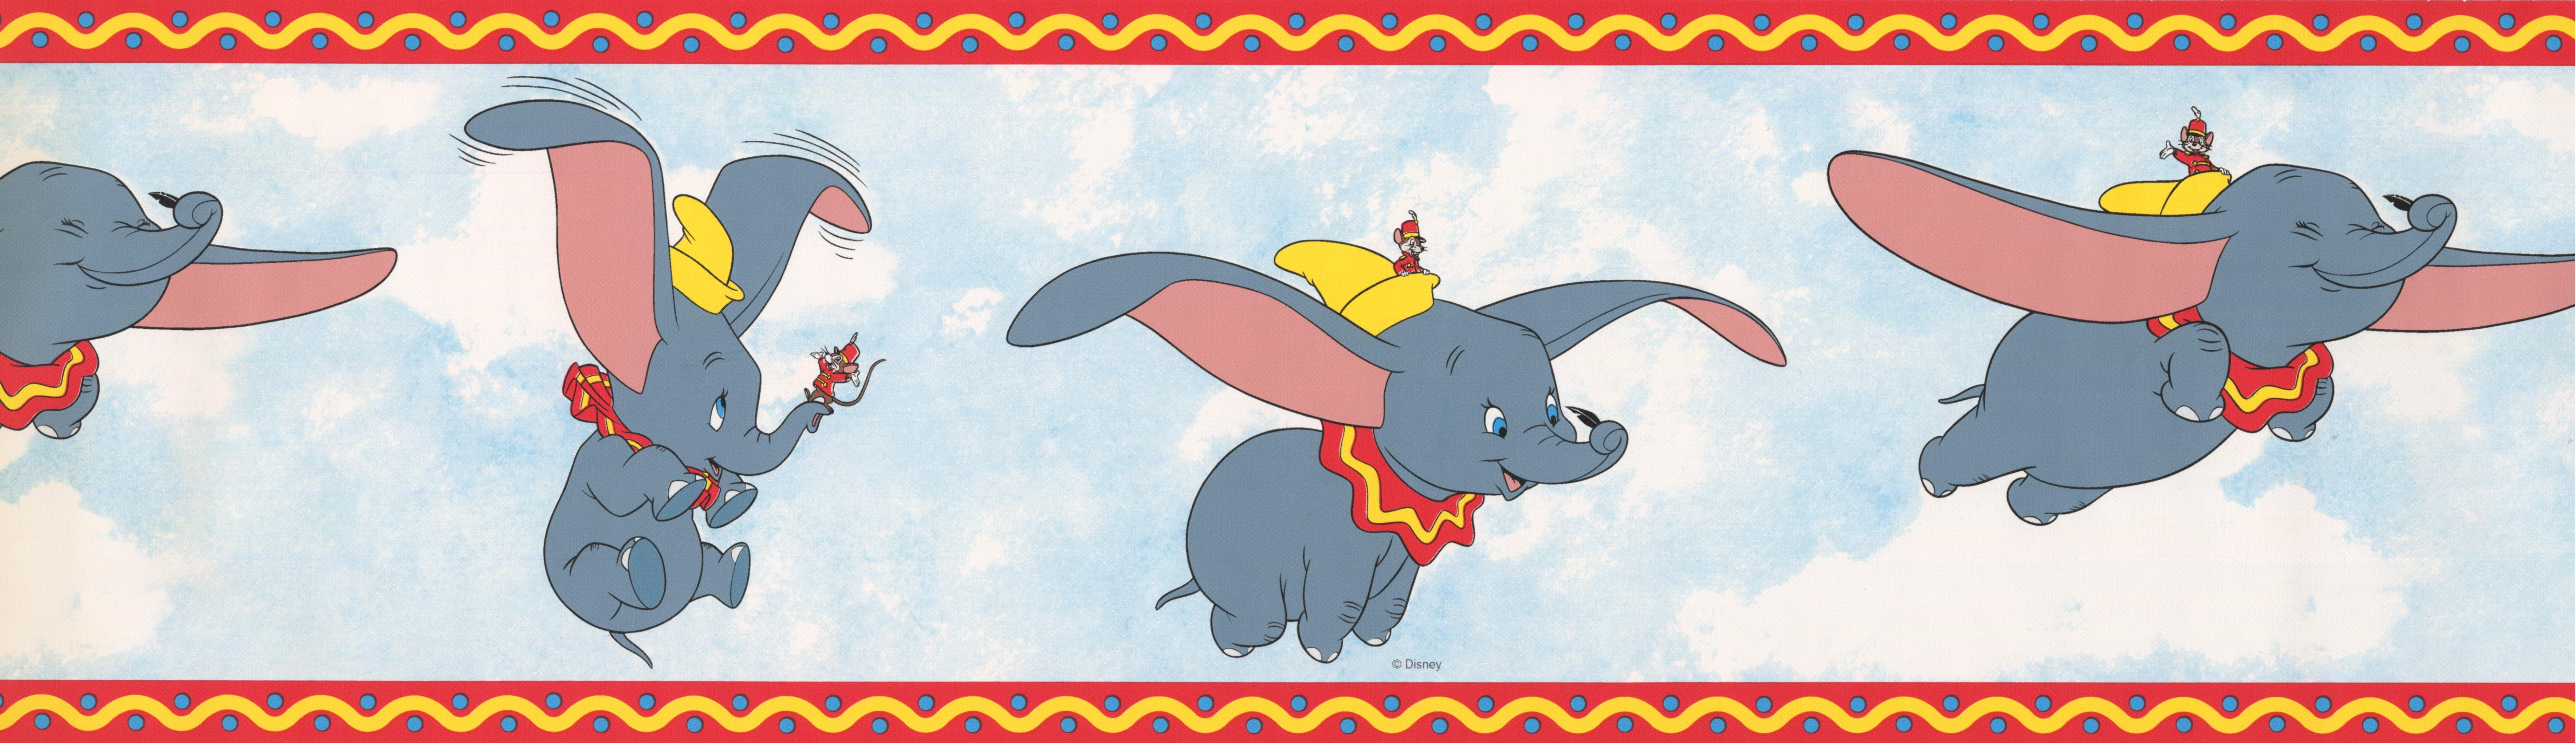 Wallpaper Accessories 7 Disney Dumbo Elephant Peel Stick